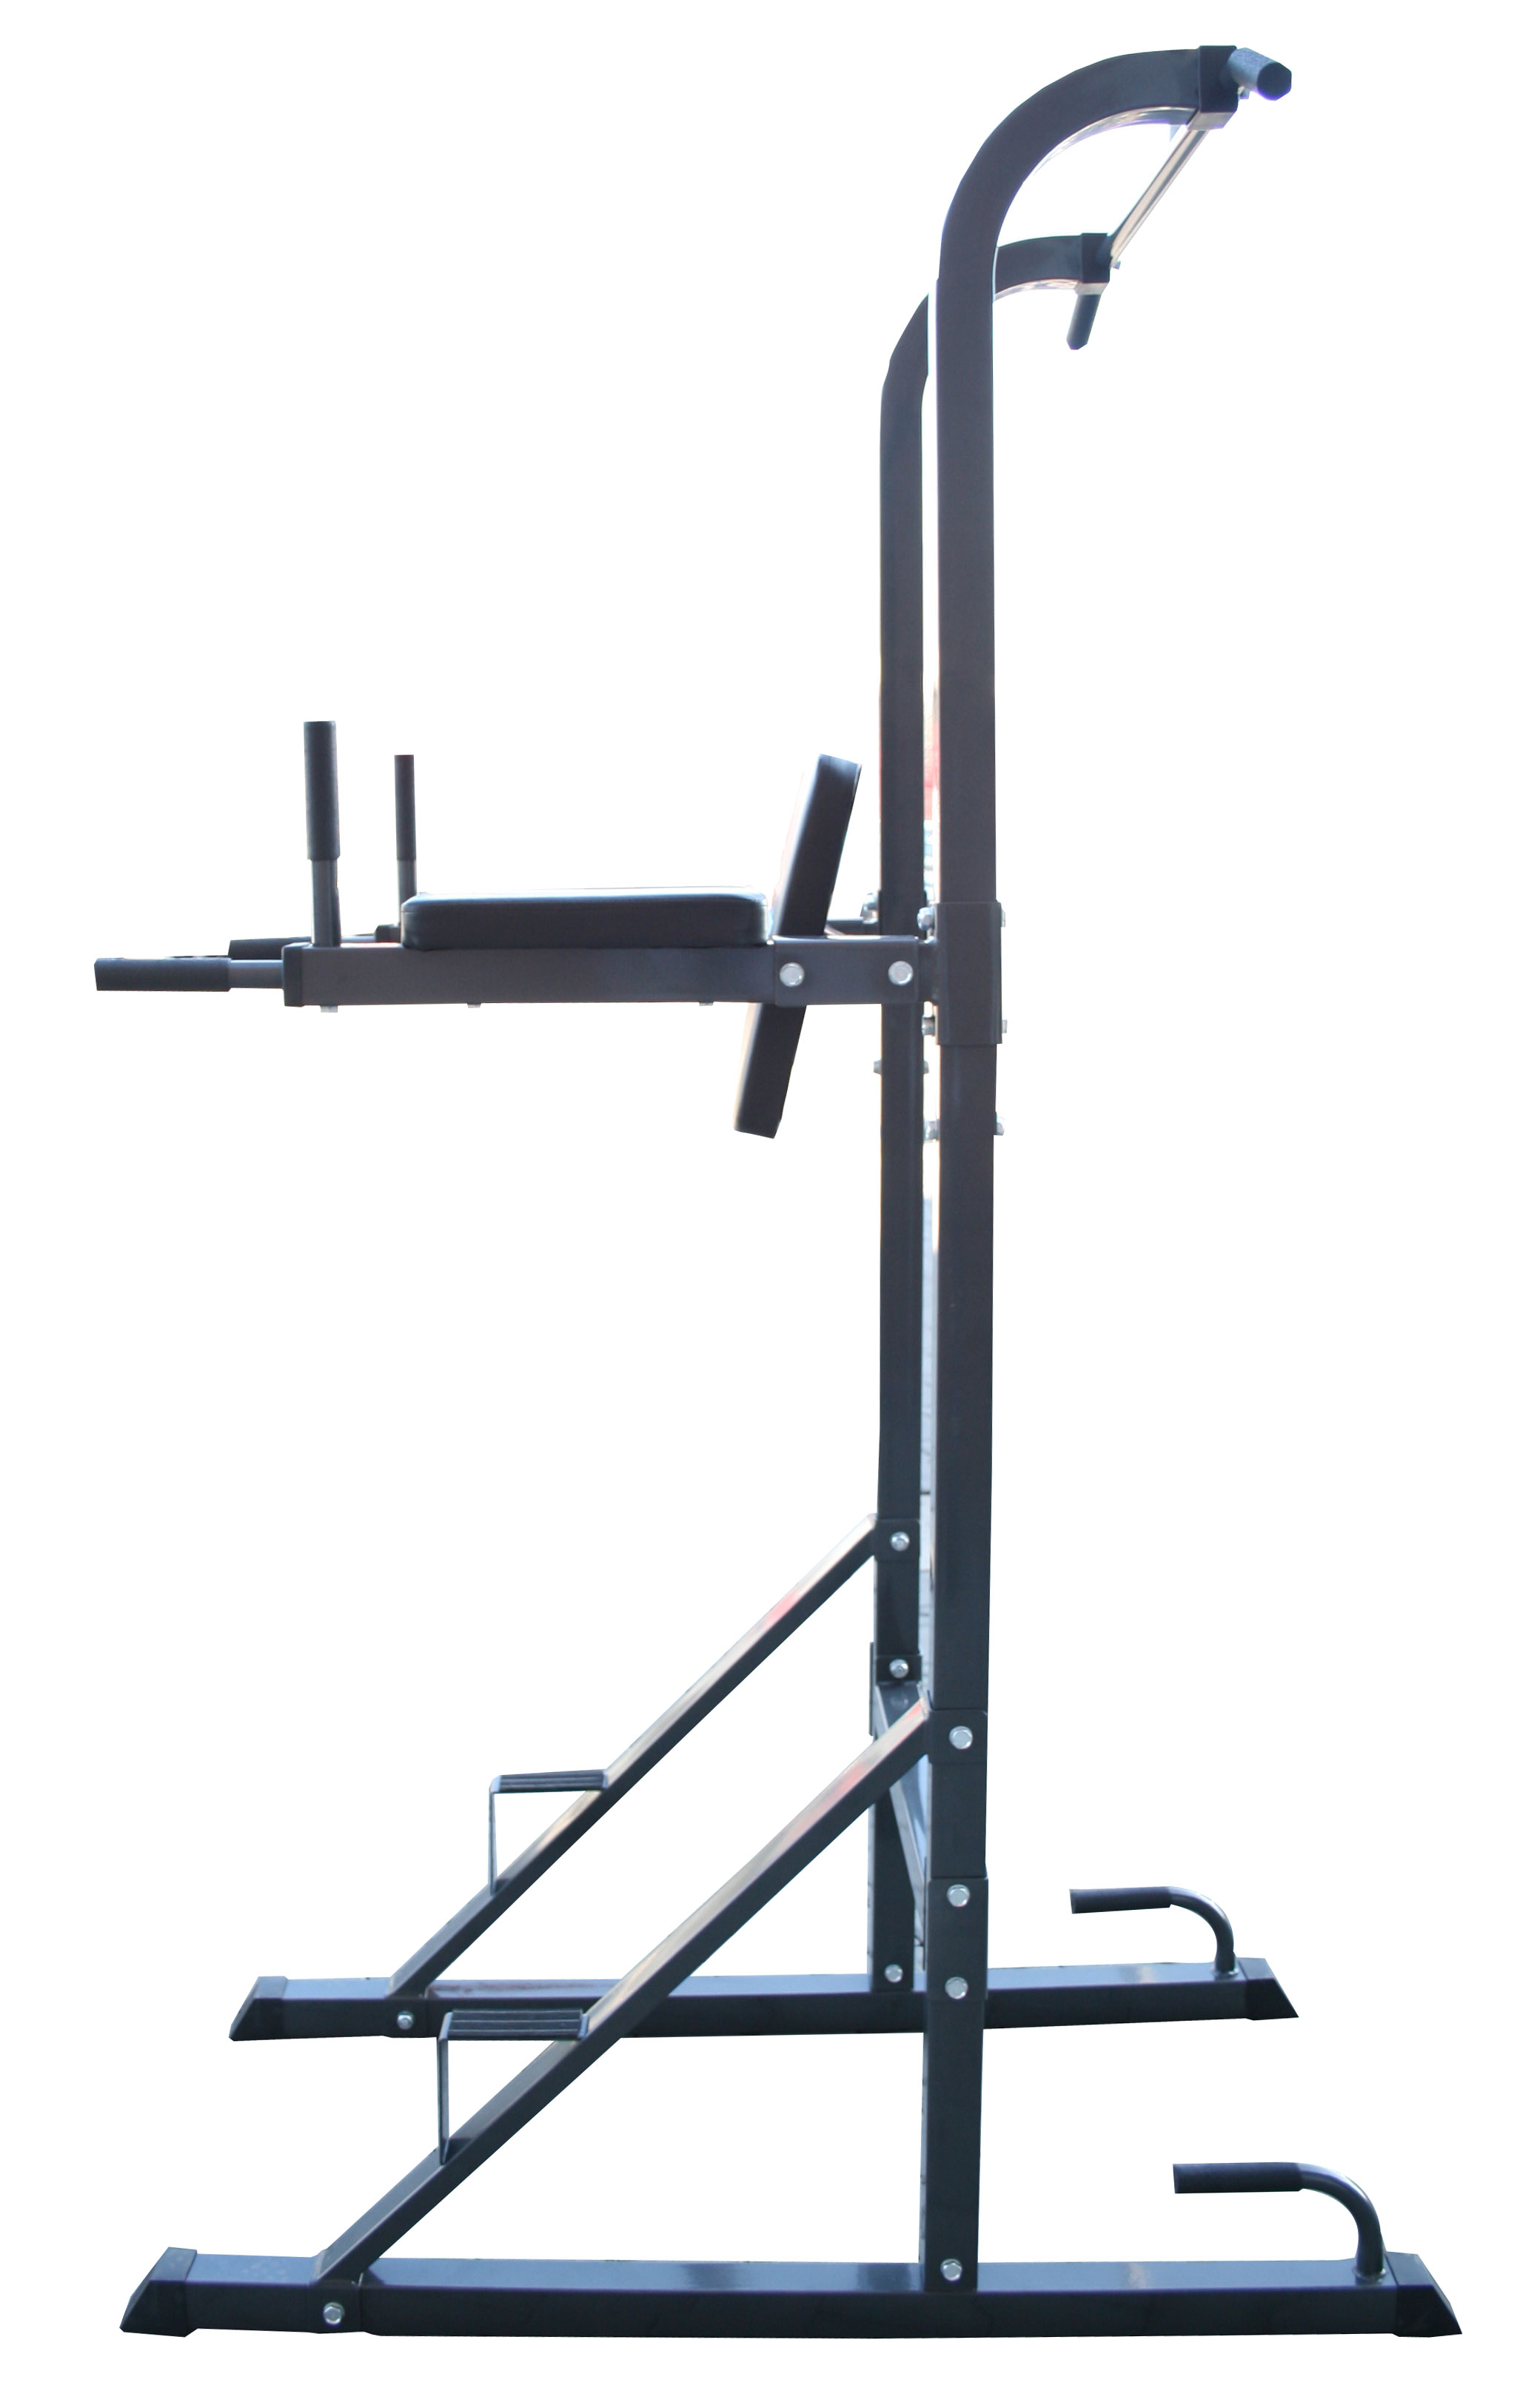 FIT EVOLUTION Parallele Power Tower - gallery 2